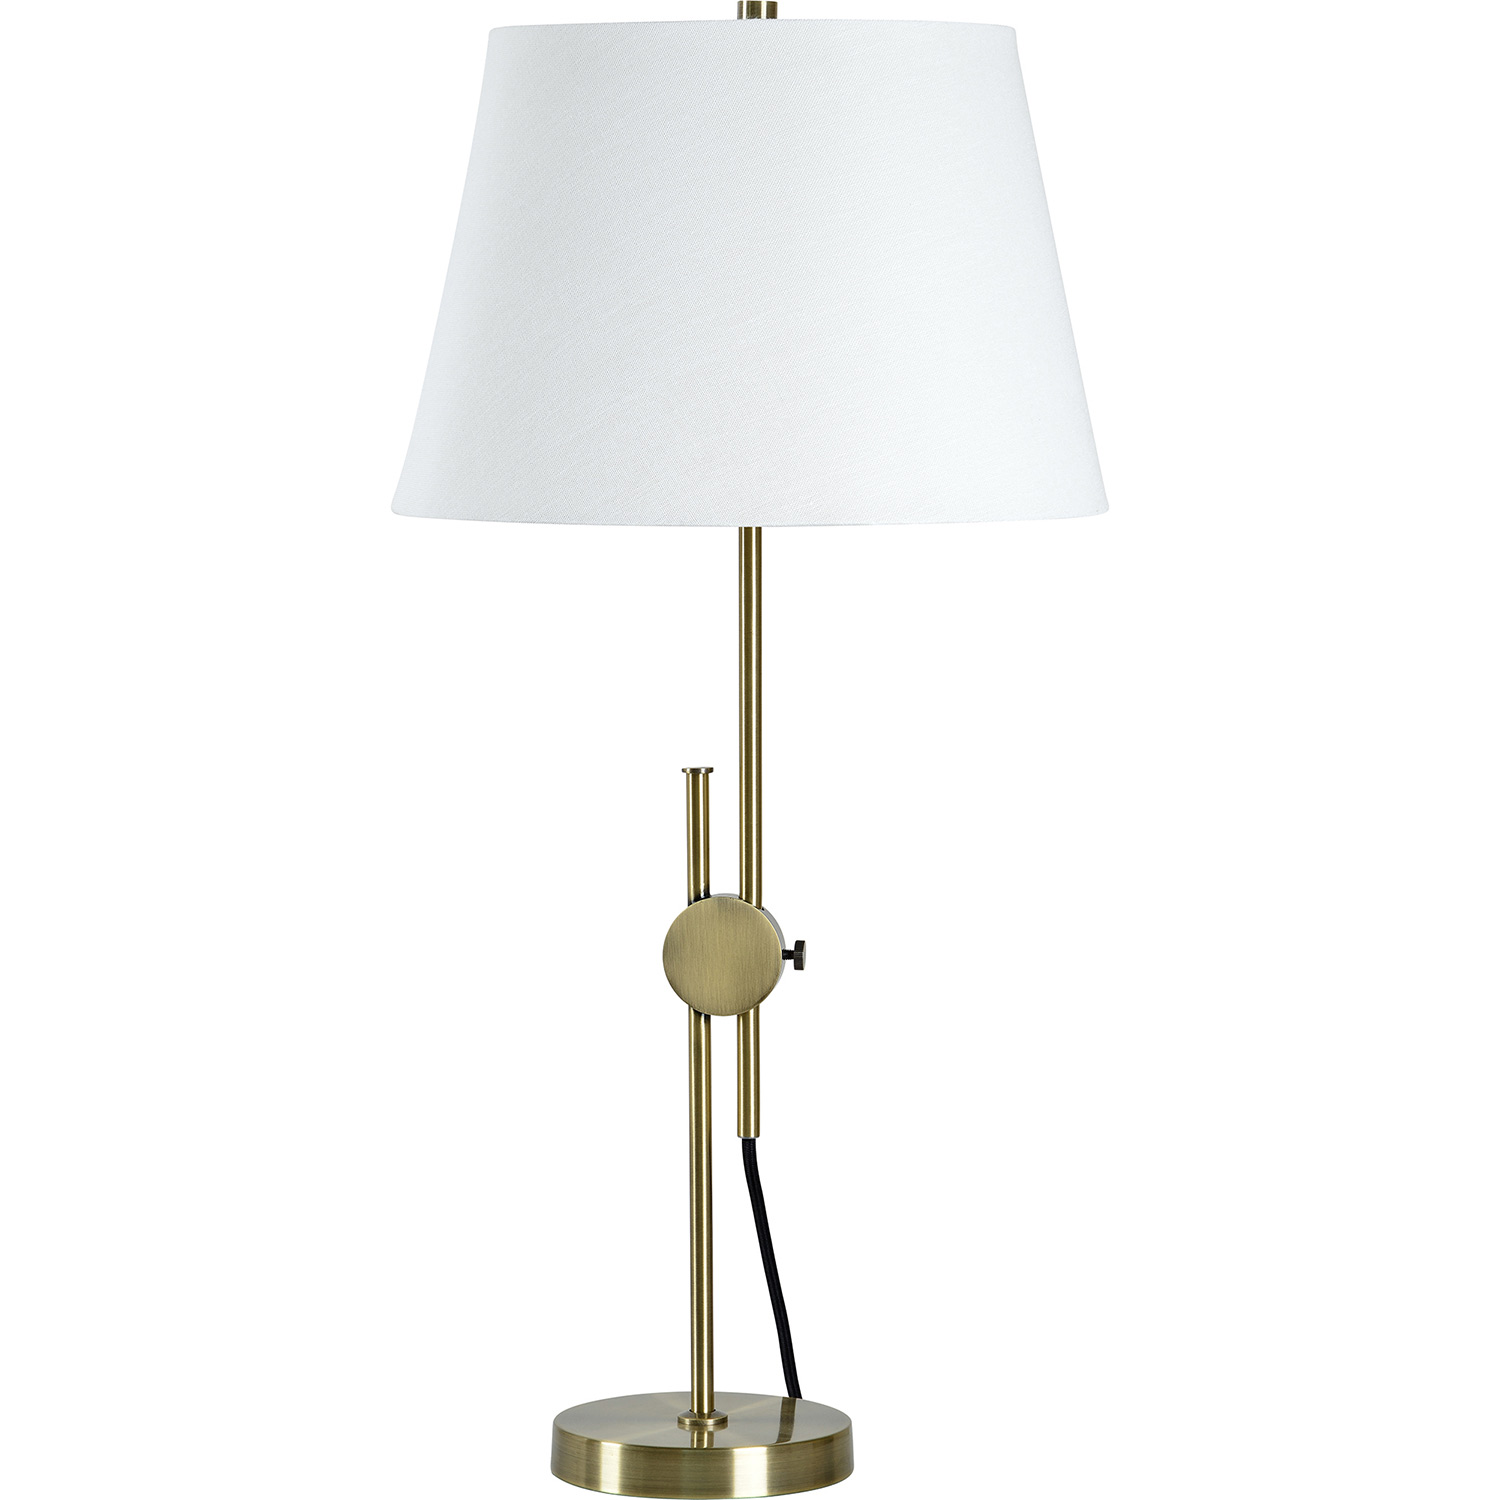 Ren-Wil Carswell Table Lamp - Antique Brass